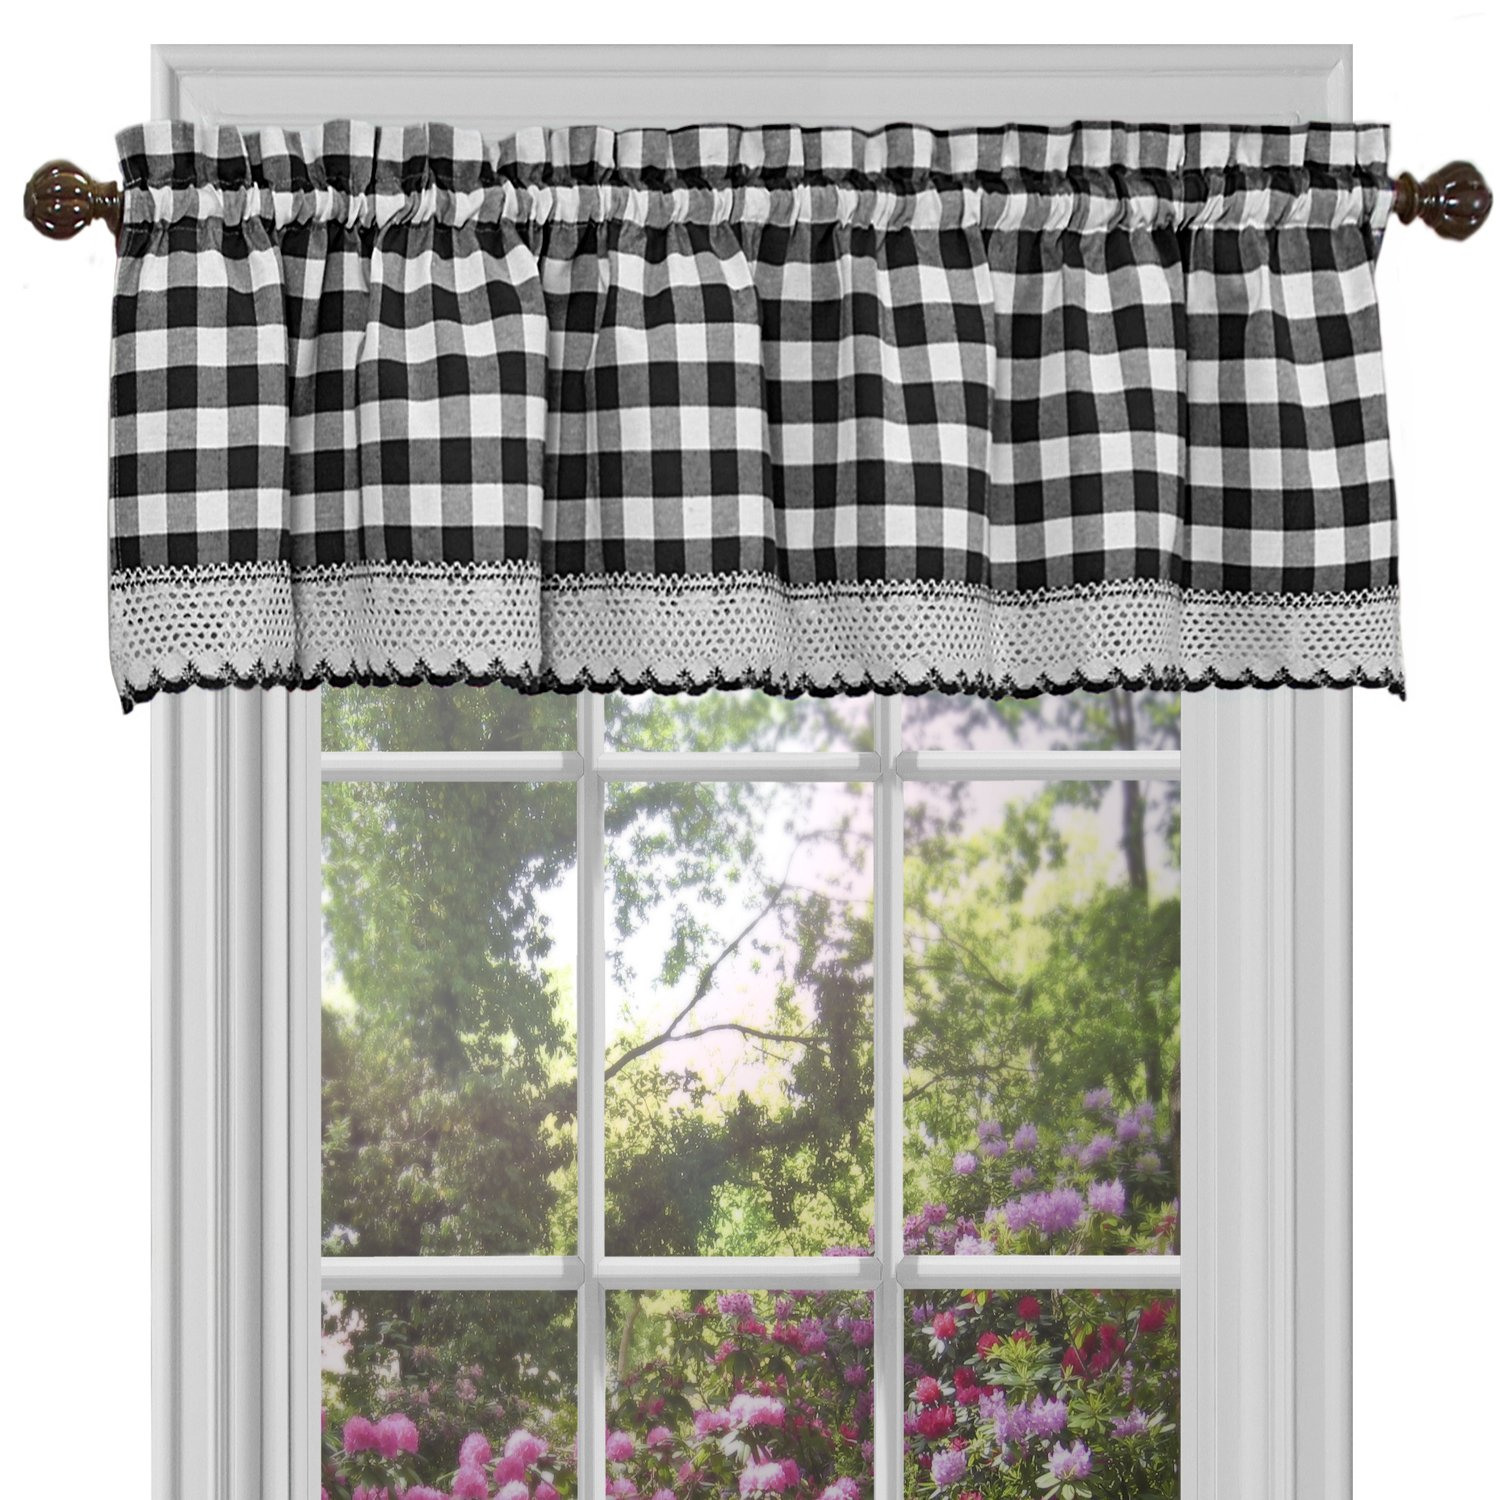 "Achim Home Furnishings Buffalo Check Window Curtain Valance, 58"" x 14"", Black & White"